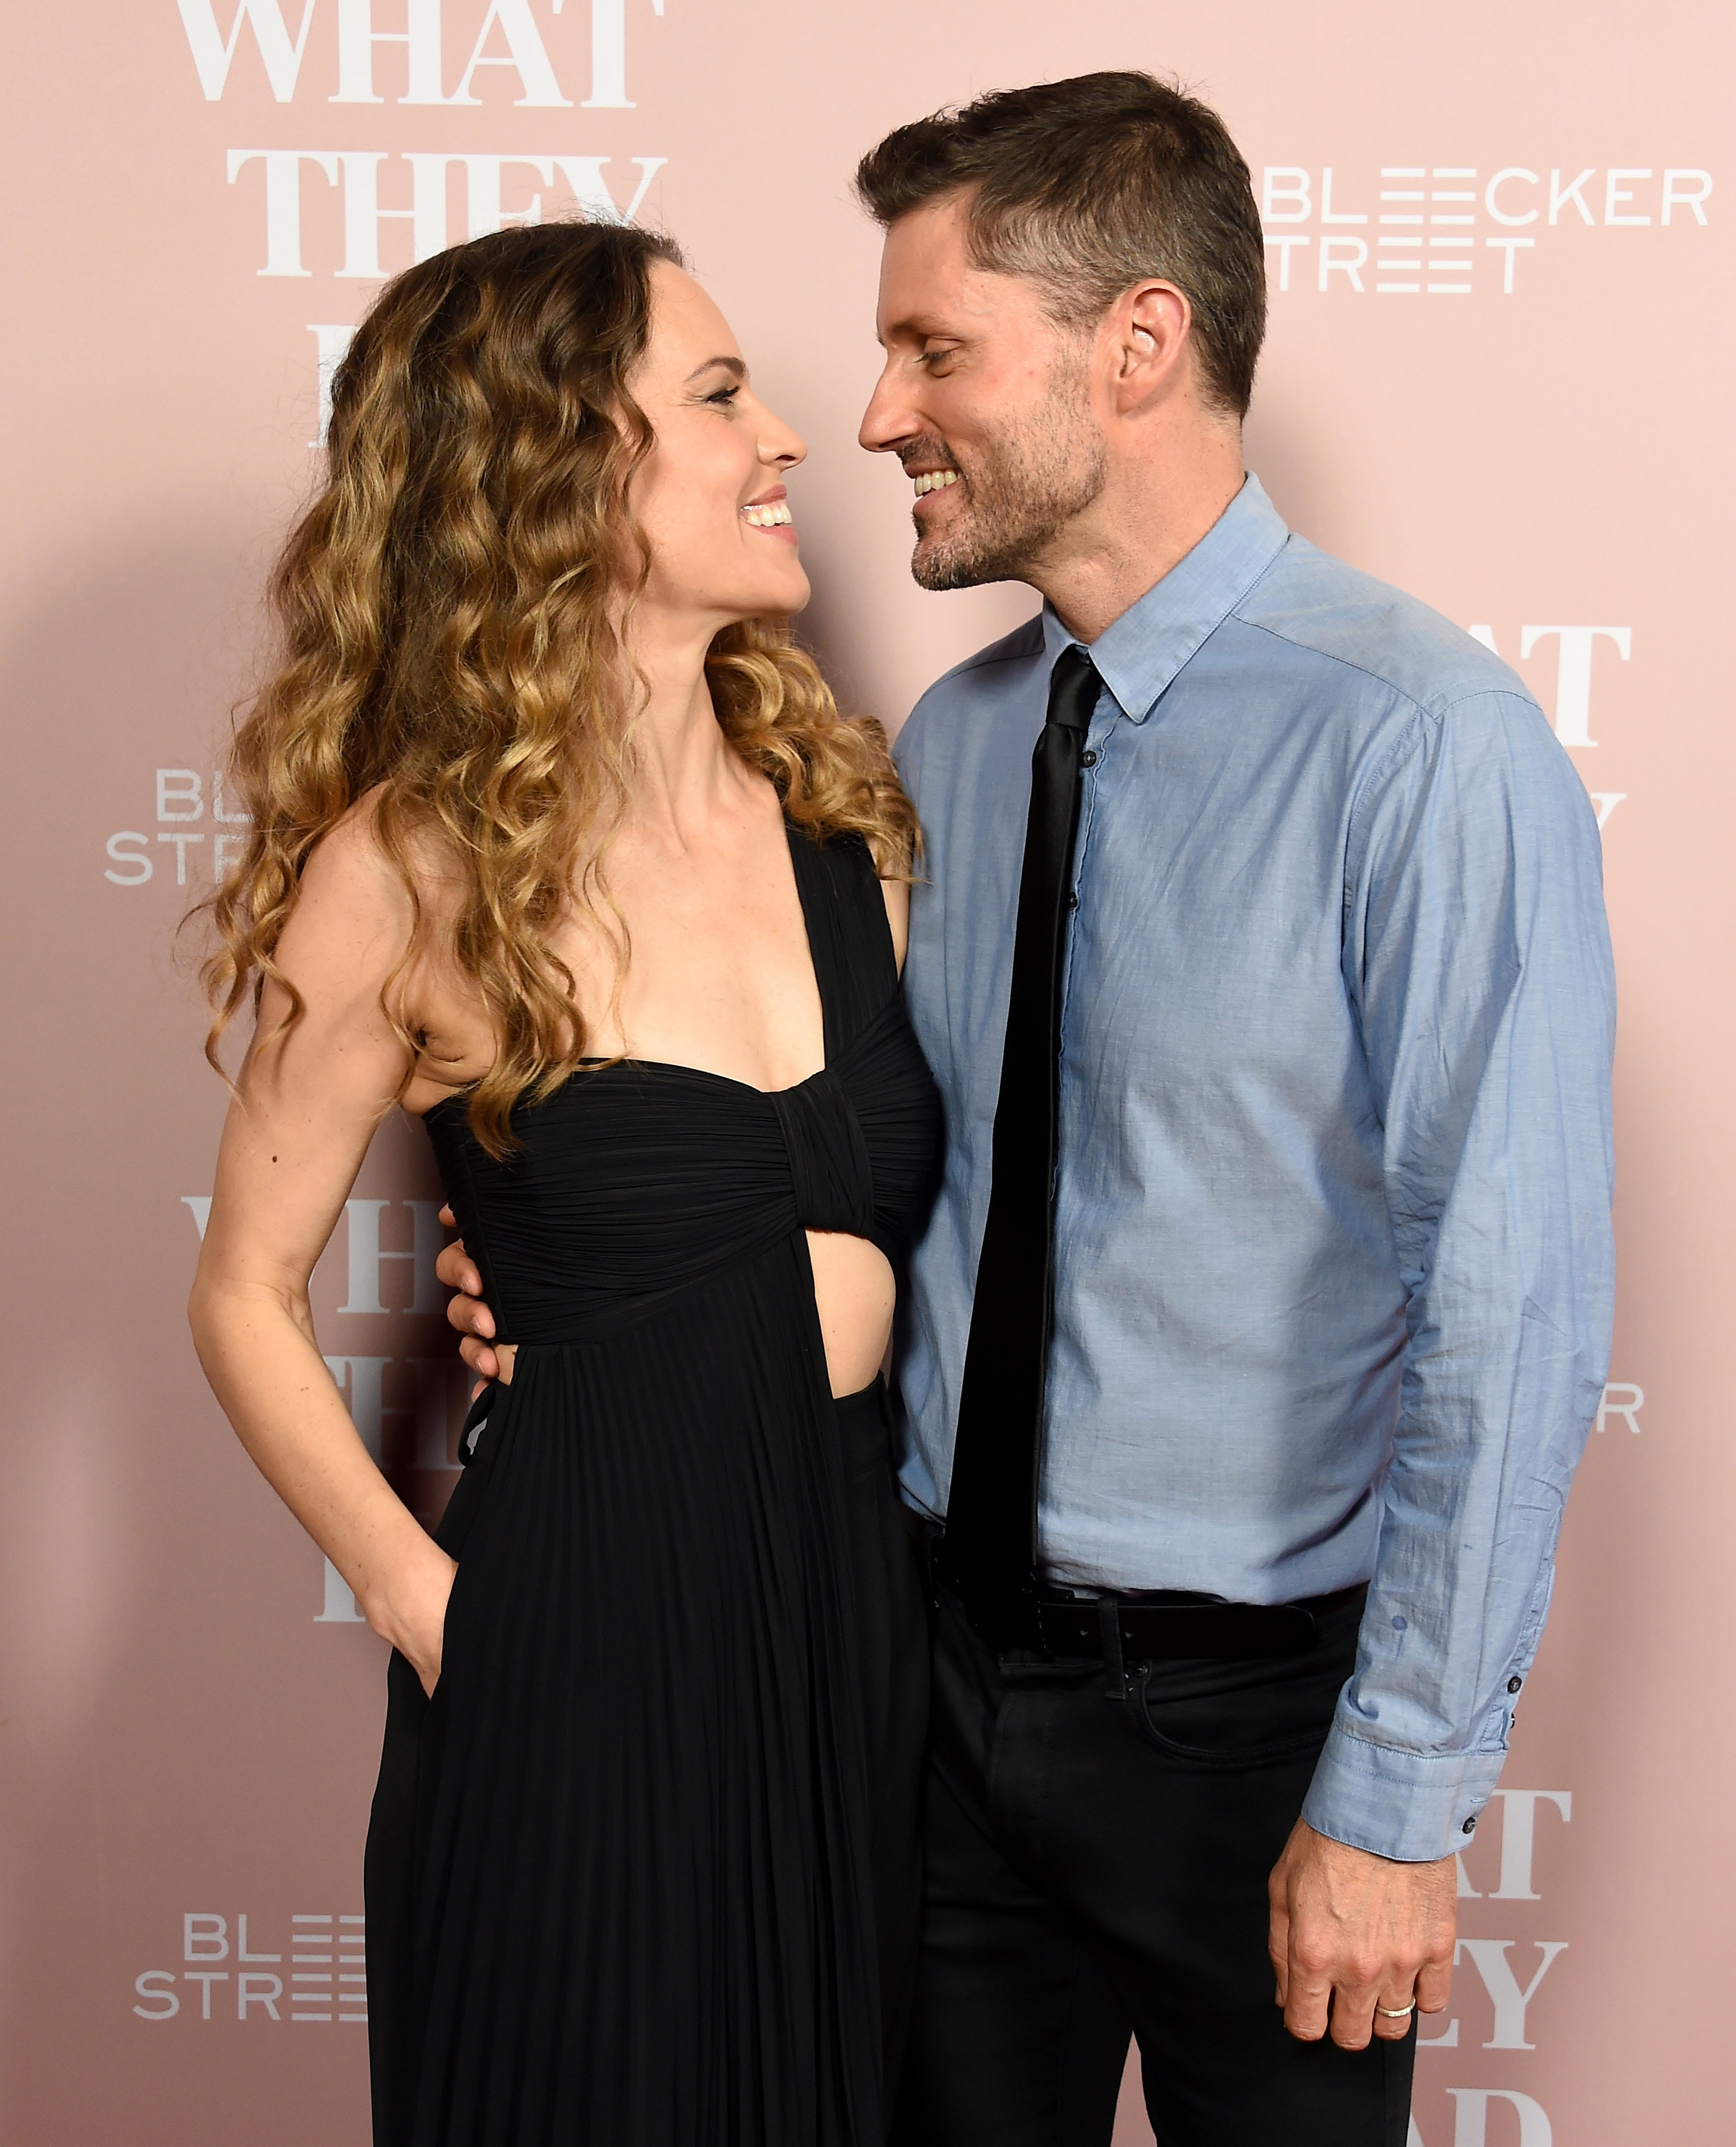 """Hilary Swank and Philip Schneider at the Los Angeles special screening of """"What They Had"""" on October 9, 2018 in Westwood, California.   Photo: Getty Images"""